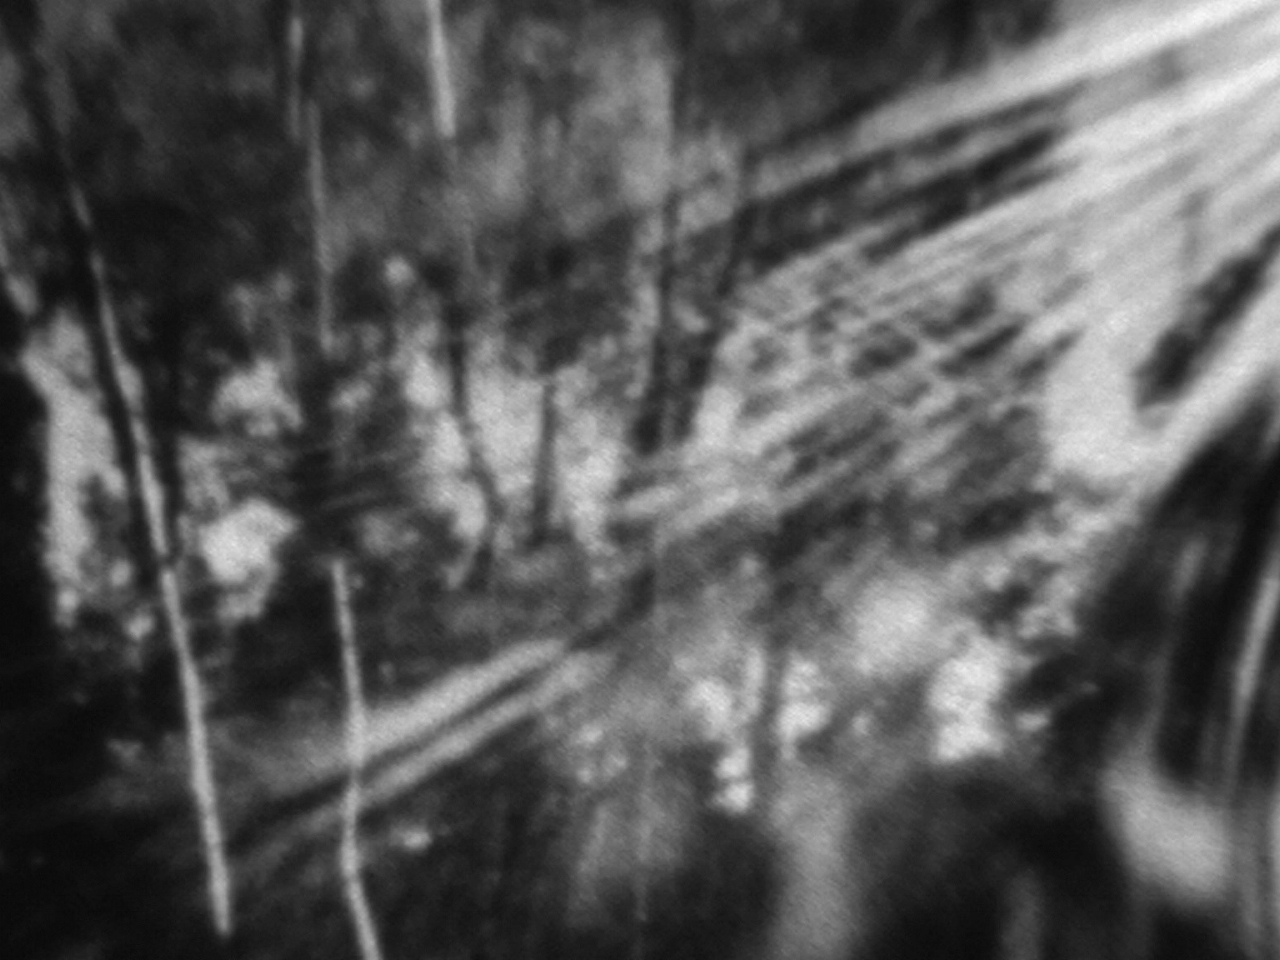 """Under the Shadow of Marcus Mountain     Robert Schaller   2011 / 6 minutes / USA / 16mm / silent  Shot entirely with a homemade pinhole camera and edited largely in-camera through the use of a rhythmic score. The structures of our thought filter what we see, and in fact there is no seeing apart from those structures. This film is part of an ongoing project to show where I am in a (here, natural) landscape in a way that reflects those structures of thought. It is """"hypnogogic,""""not so much perceptually (although to some extent that too) as conceptually. Our eyes see constantly, but what do we actually notice? That vision is excessive, wasteful, even; in paring down, it becomes both more spare and more concentrated. -RS"""